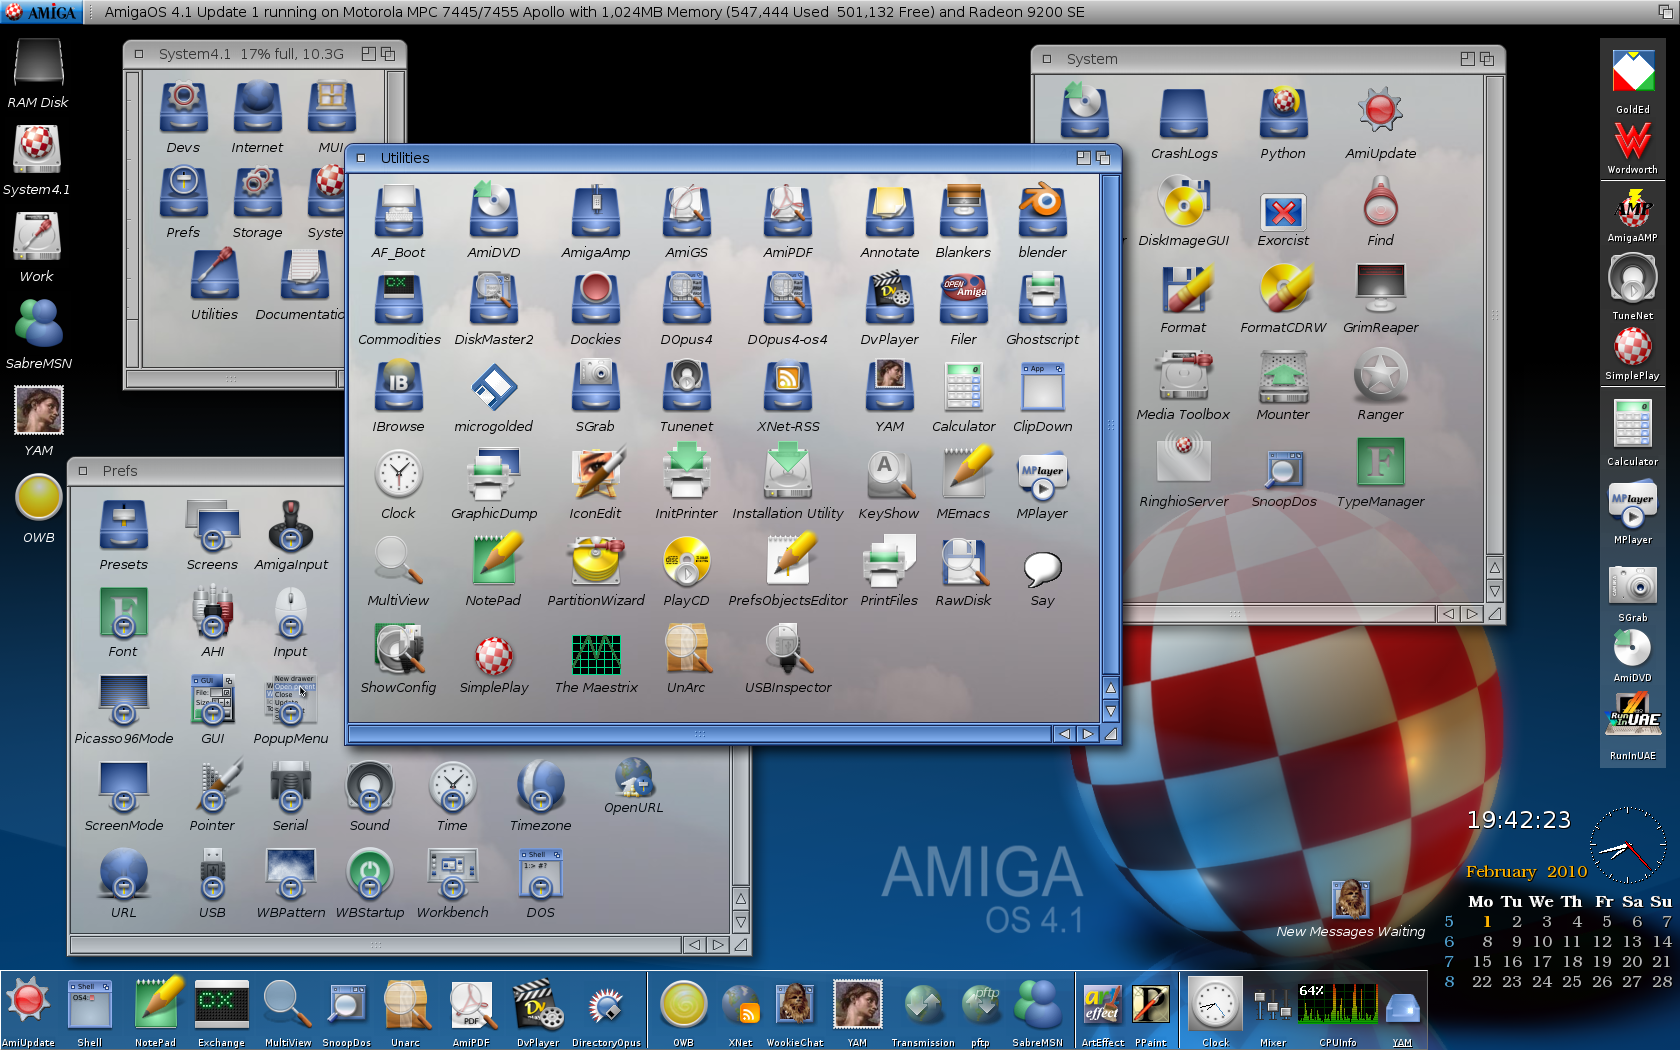 AmigaOS 4.1 Workbench